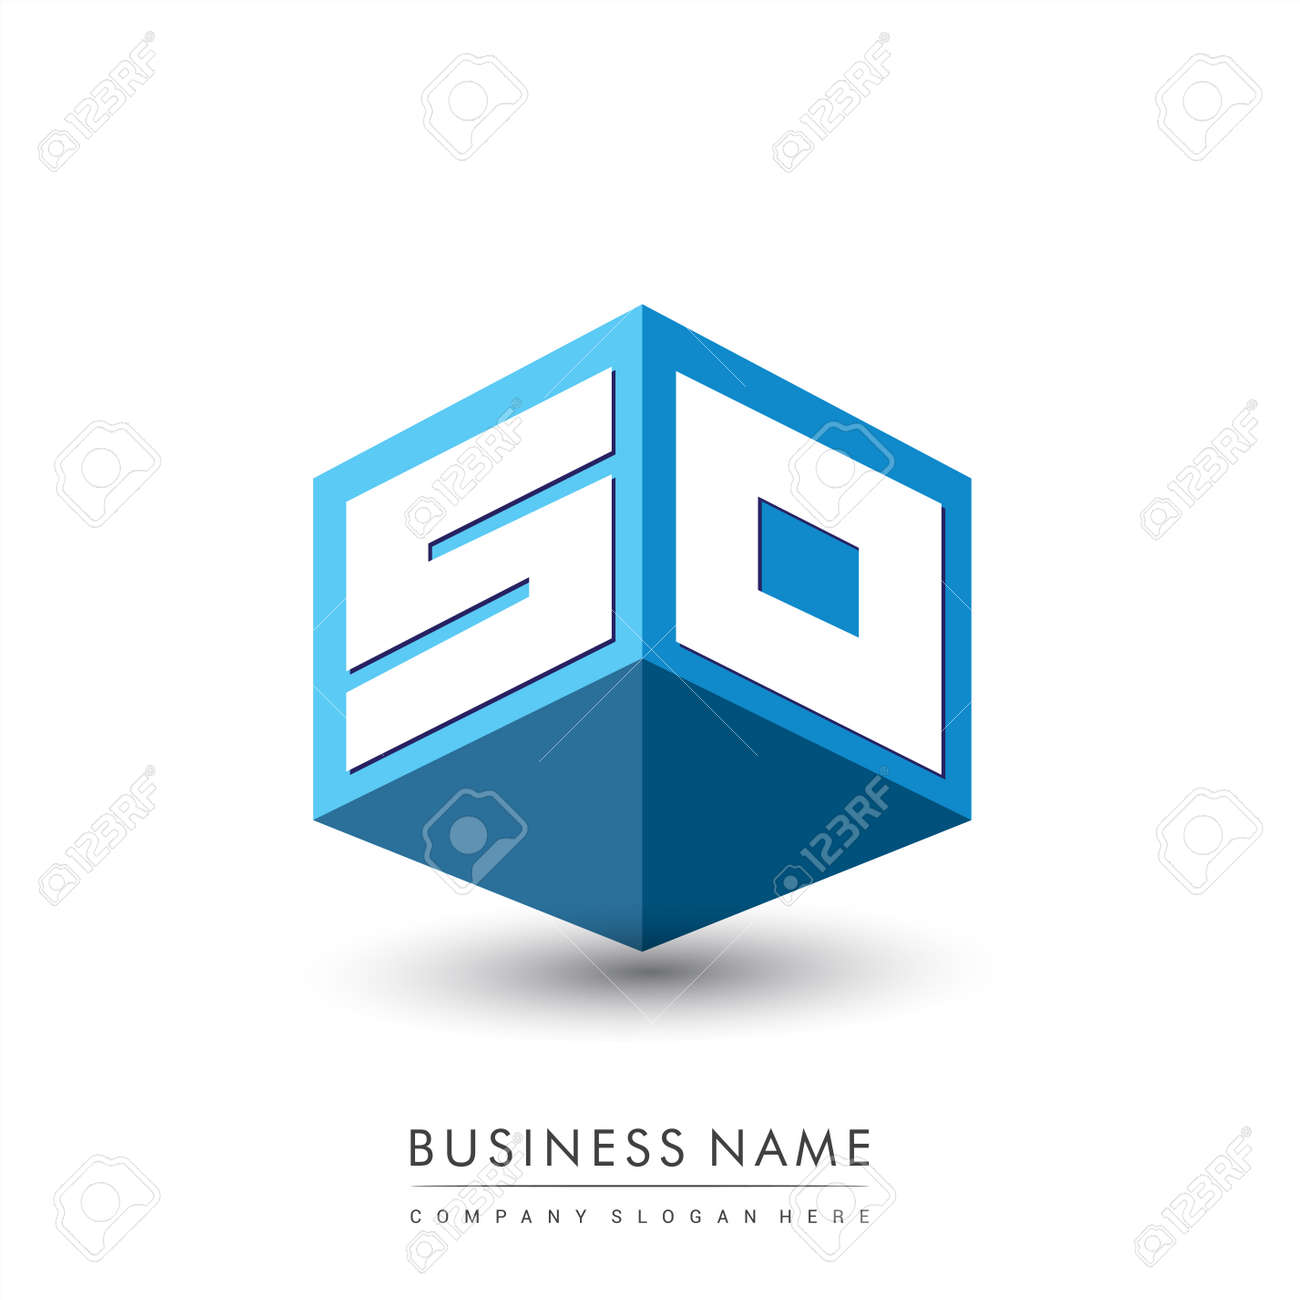 Letter SO logo in hexagon shape and blue background, cube logo with letter design for company identity. - 159439417